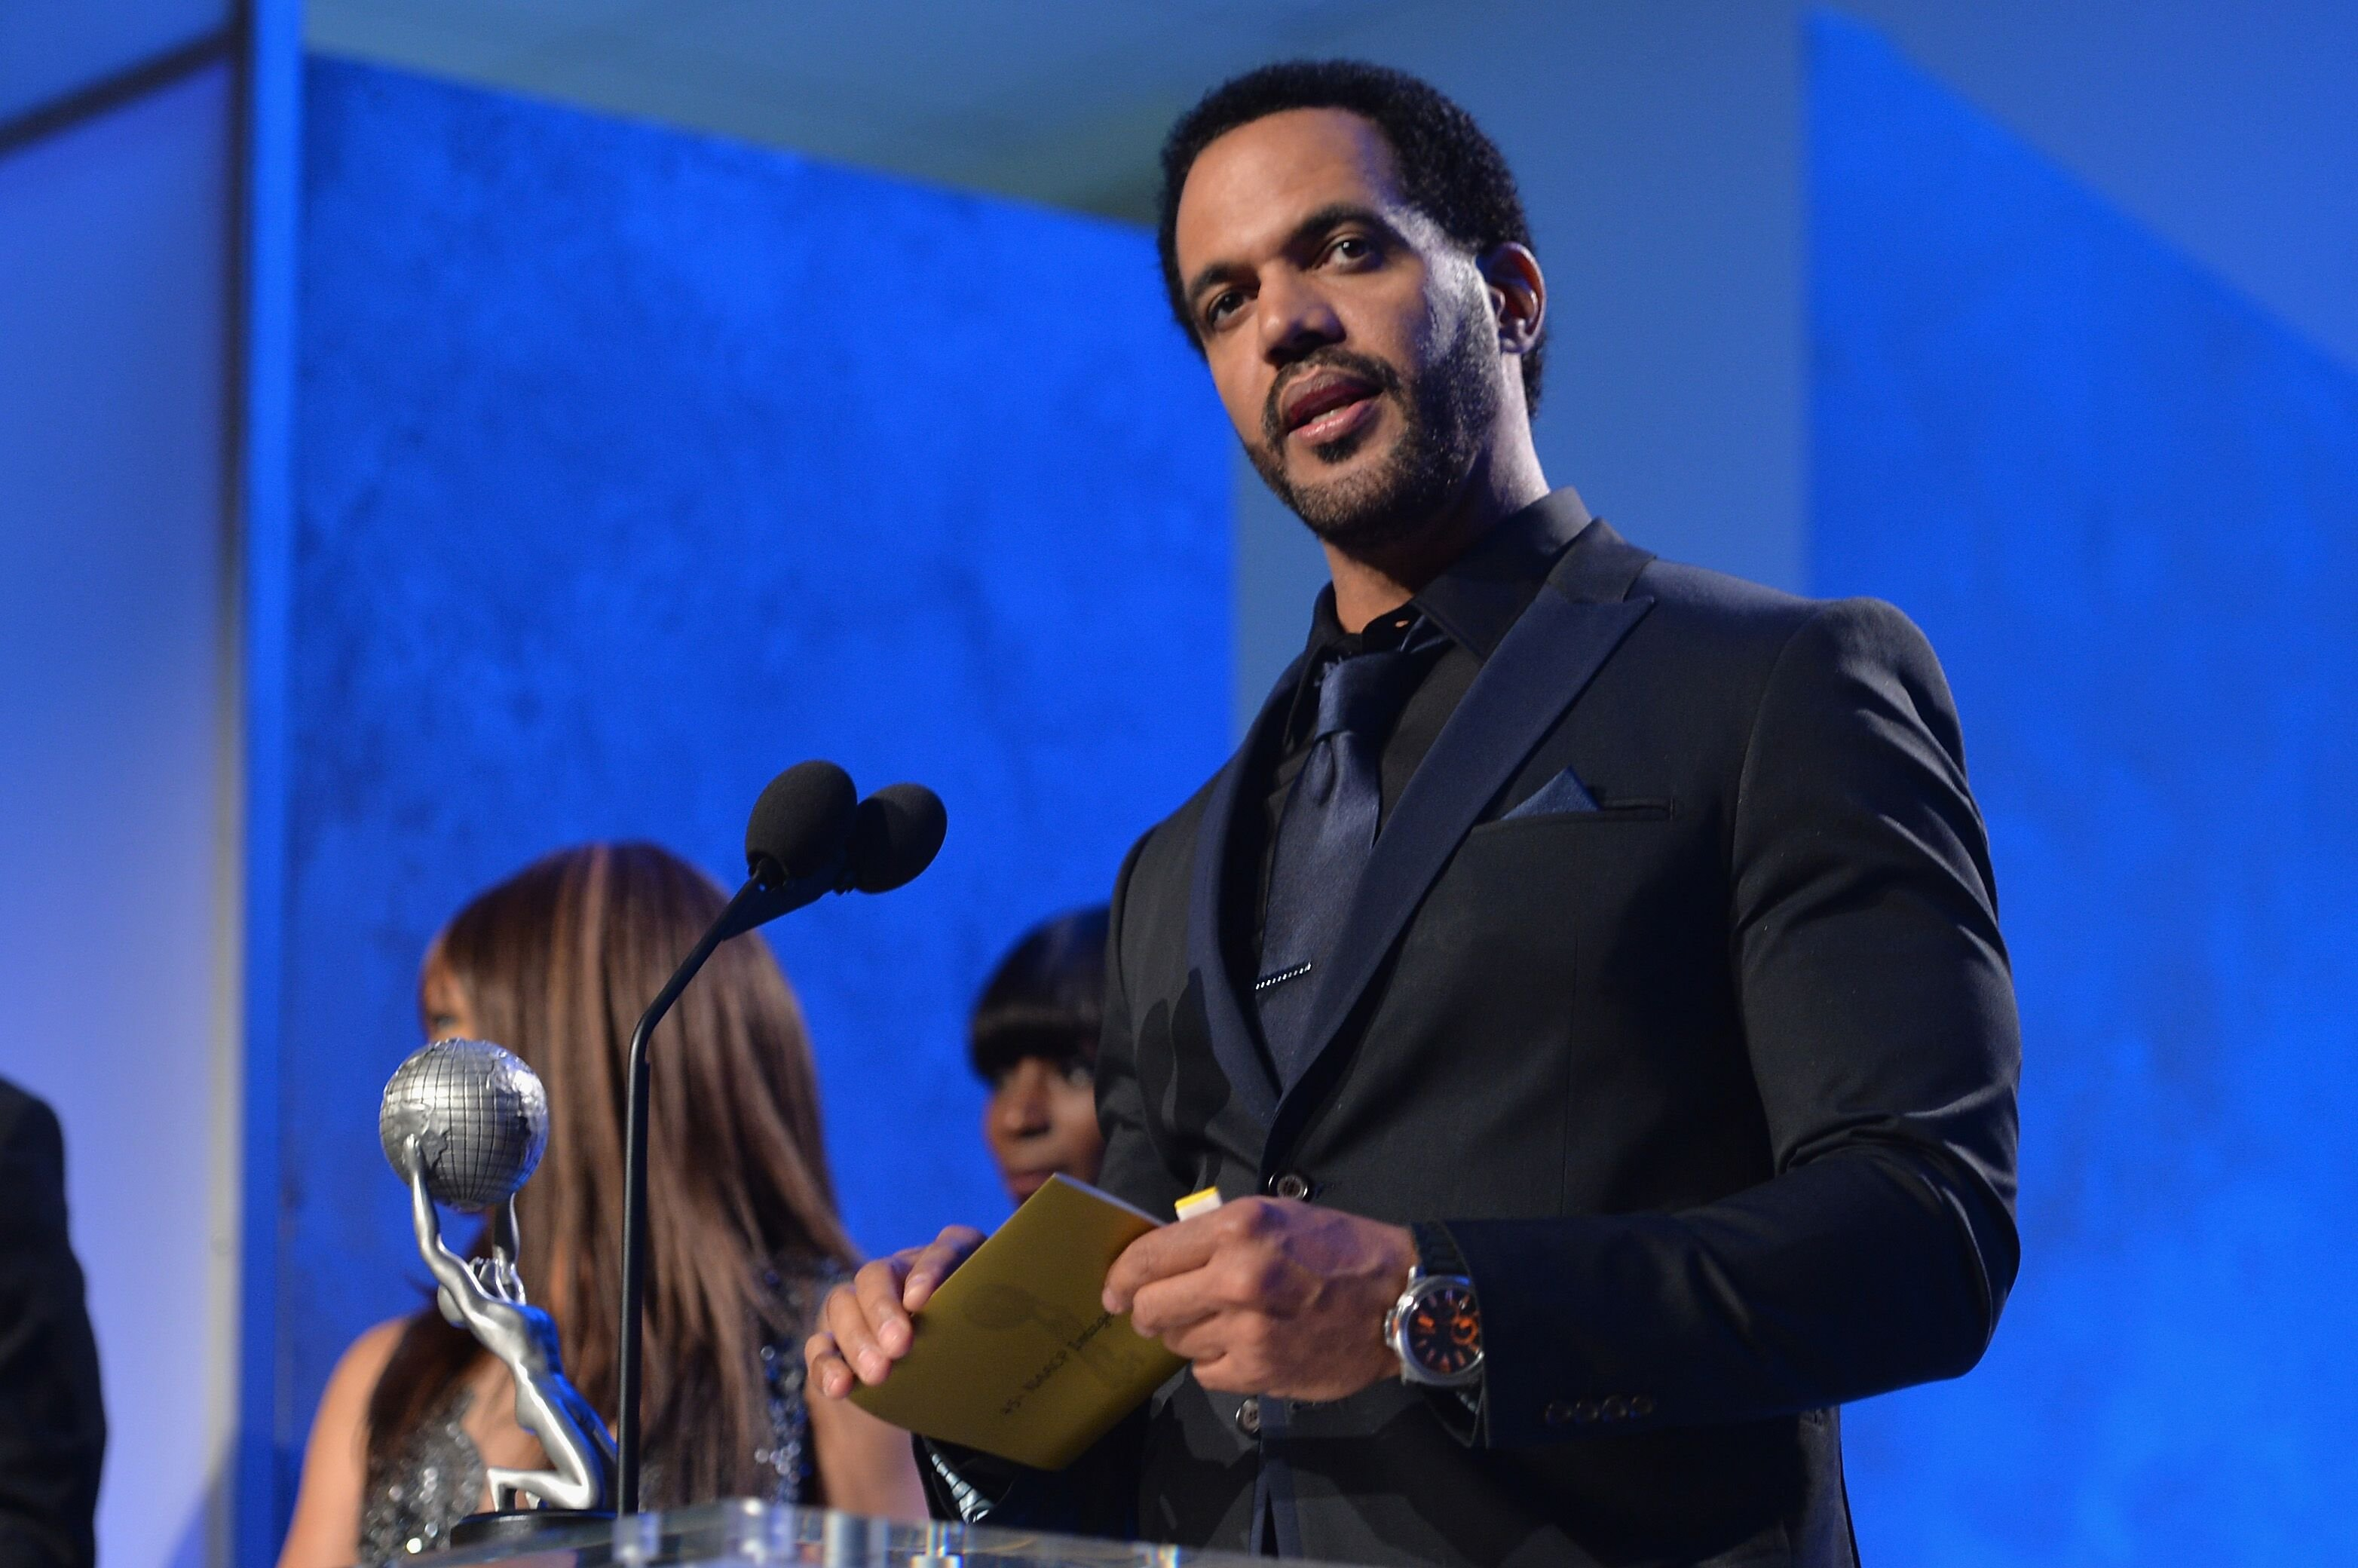 Kristoff St. John at the 45th NAACP Awards Ceremony at the Pasadena Civic Auditorium/ Source: Getty Images